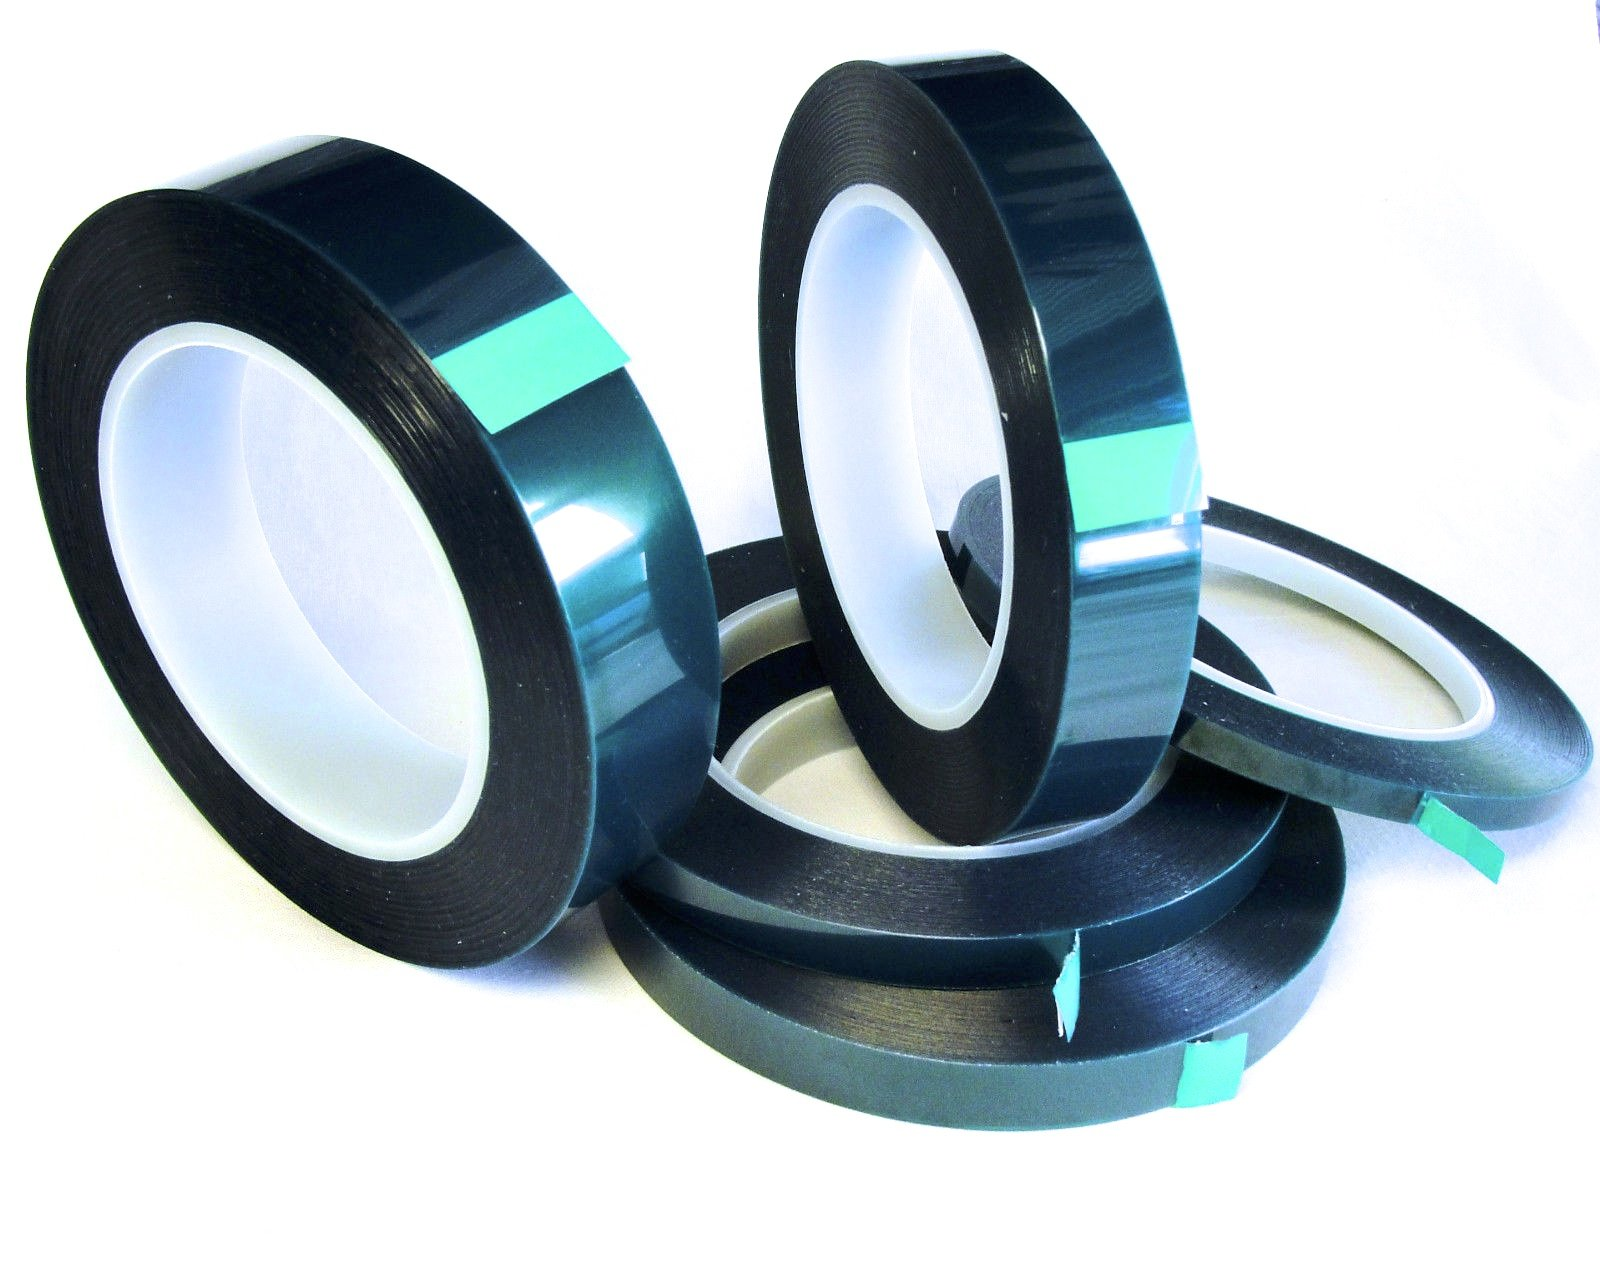 5 Roll High Temp Masking Tape Kit for Powder Coating, Painting, Hydrodip, Sublimation - Green Polyester 1/4'', 3/8'', 1/2'', 3/4'' & 1''